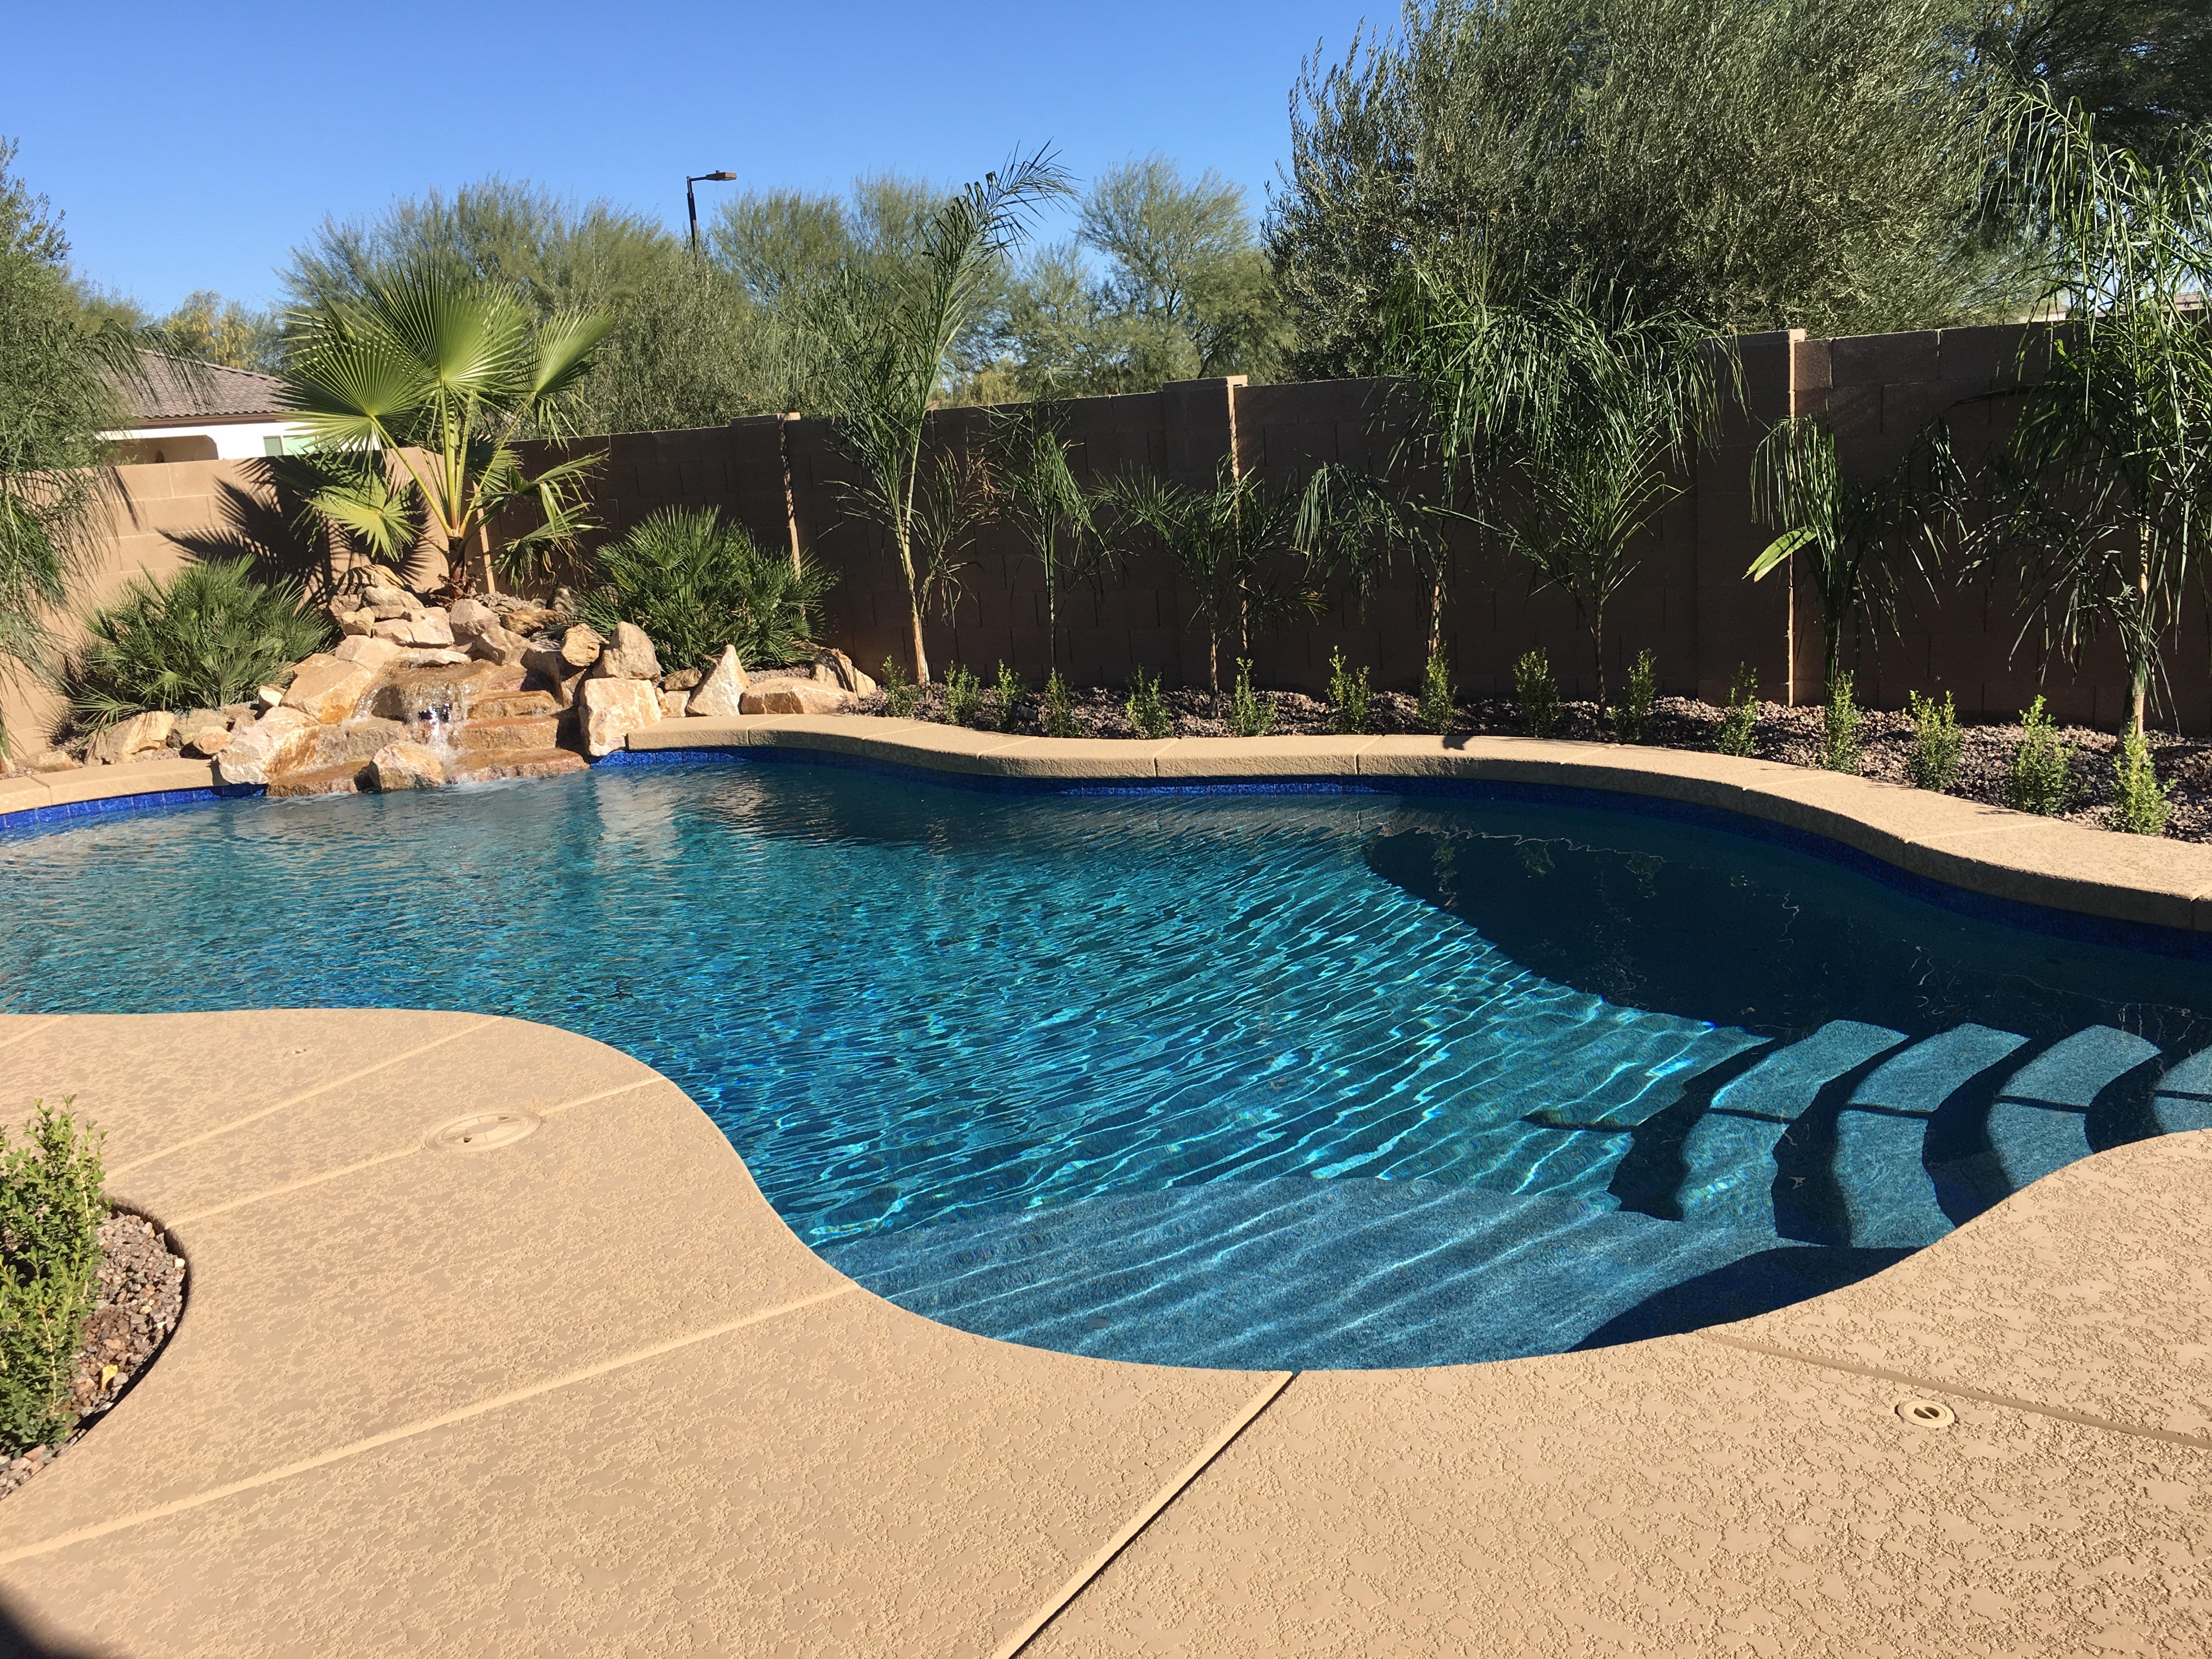 Pool Build Highlight: The Tyler Family of Chandler Heights, AZ